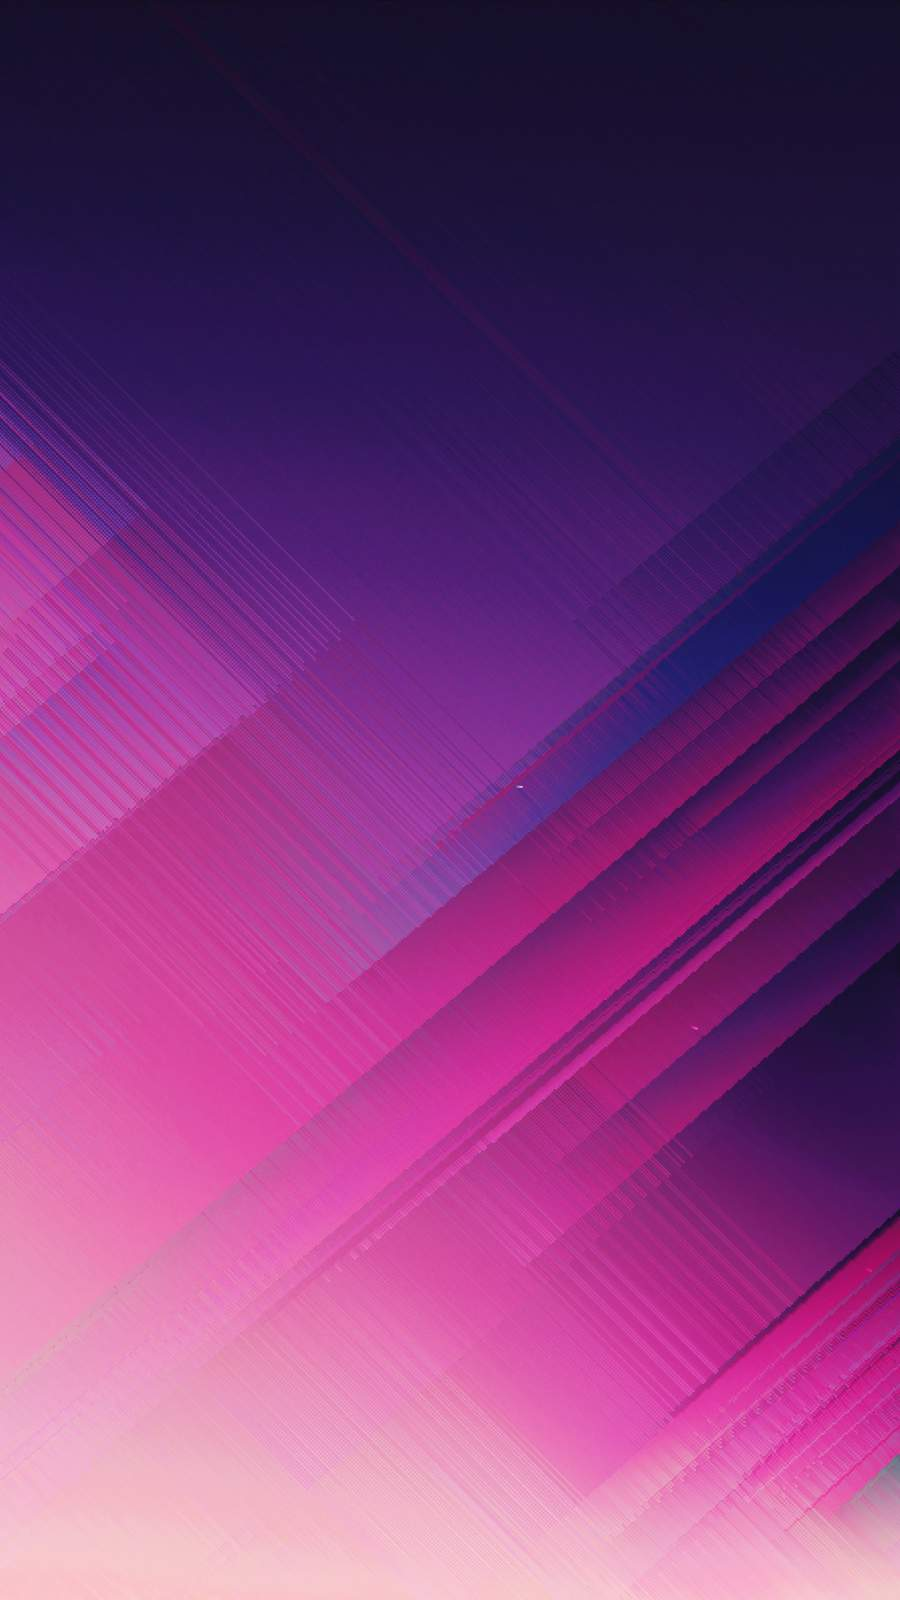 Abstract Designs iPhone Wallpaper